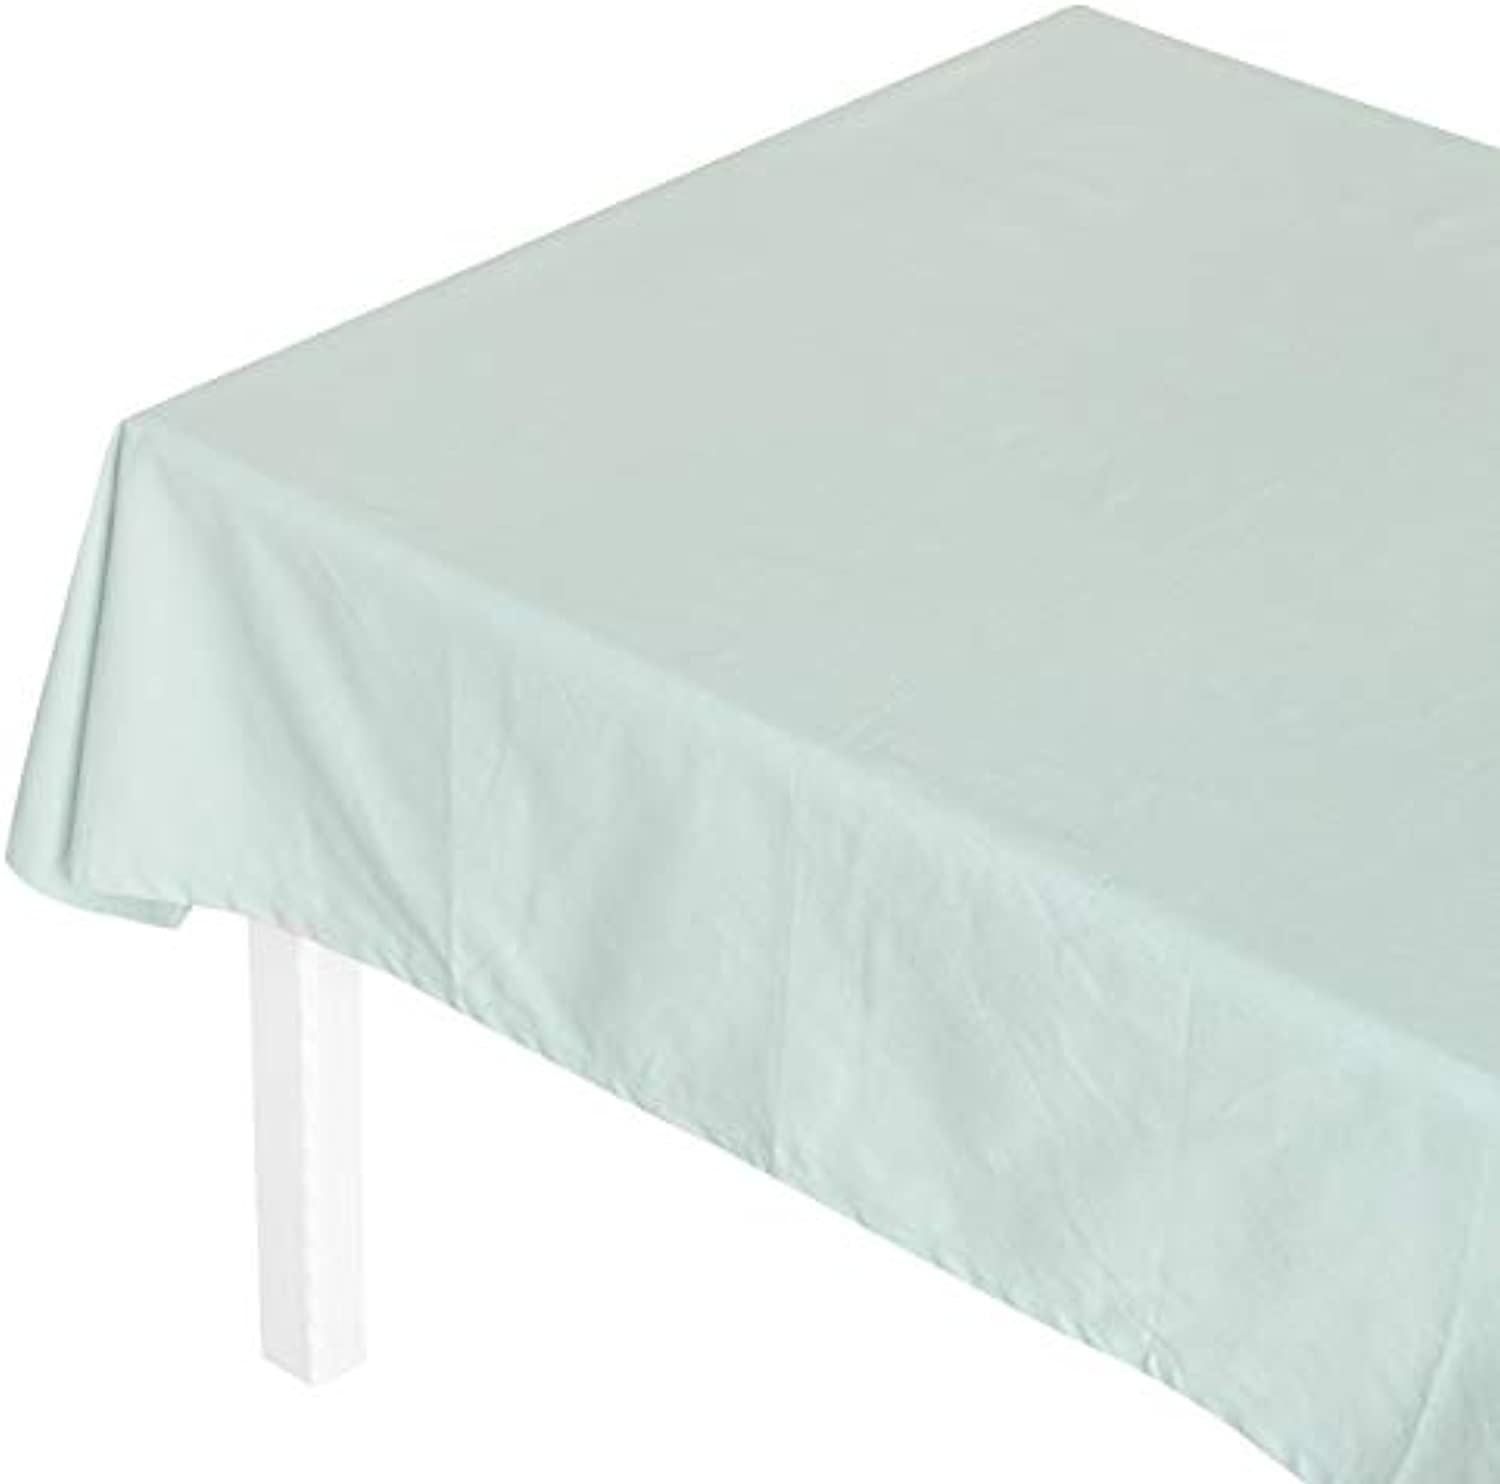 Creek Ywh Solid color tablecloth fabric pink cotton and linen small fresh padded desk coffee table cover cloth simple table round tablecloth, green, 140100cm